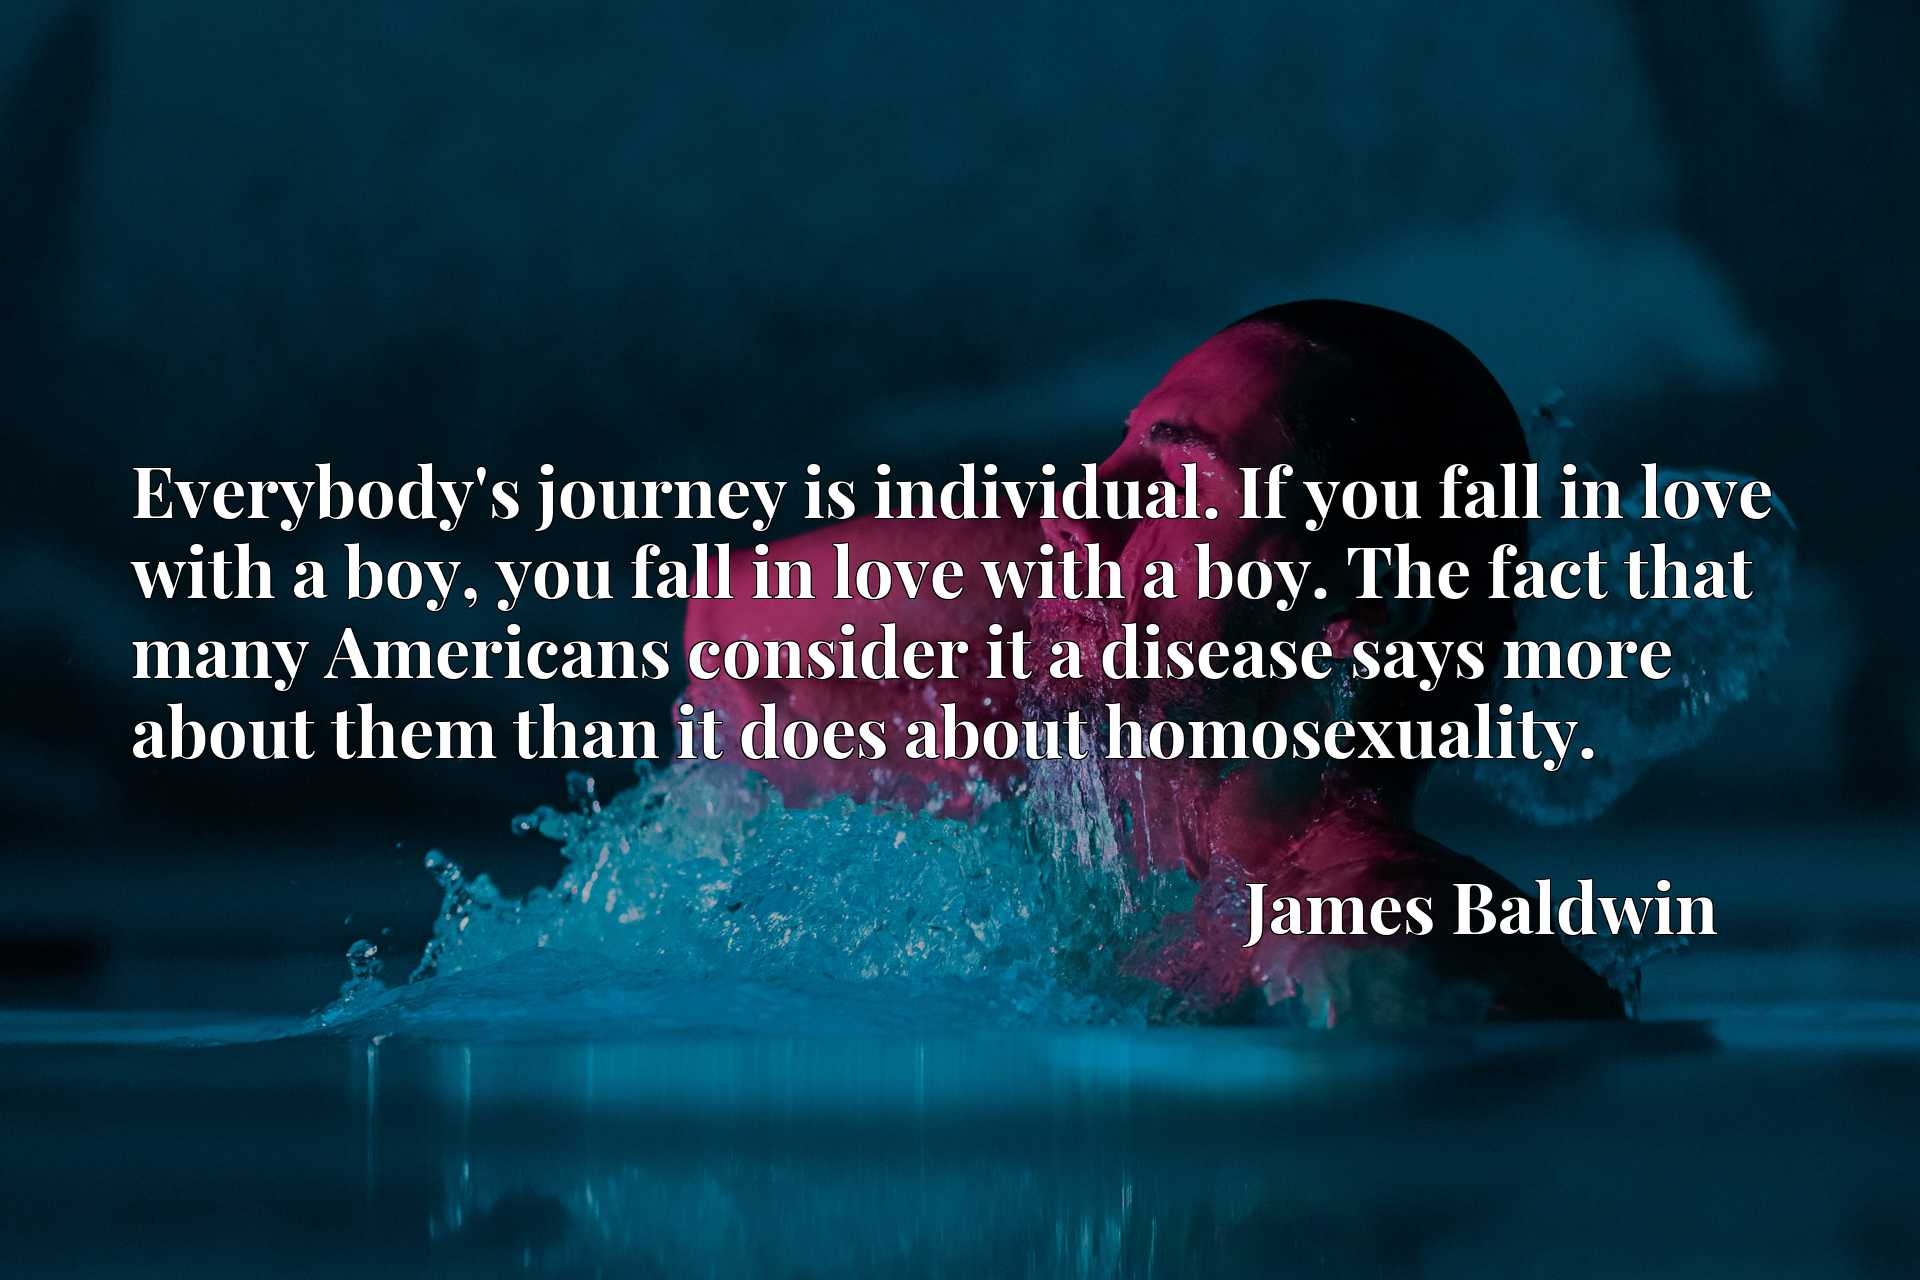 Quote Picture :Everybody's journey is individual. If you fall in love with a boy, you fall in love with a boy. The fact that many Americans consider it a disease says more about them than it does about homosexuality.